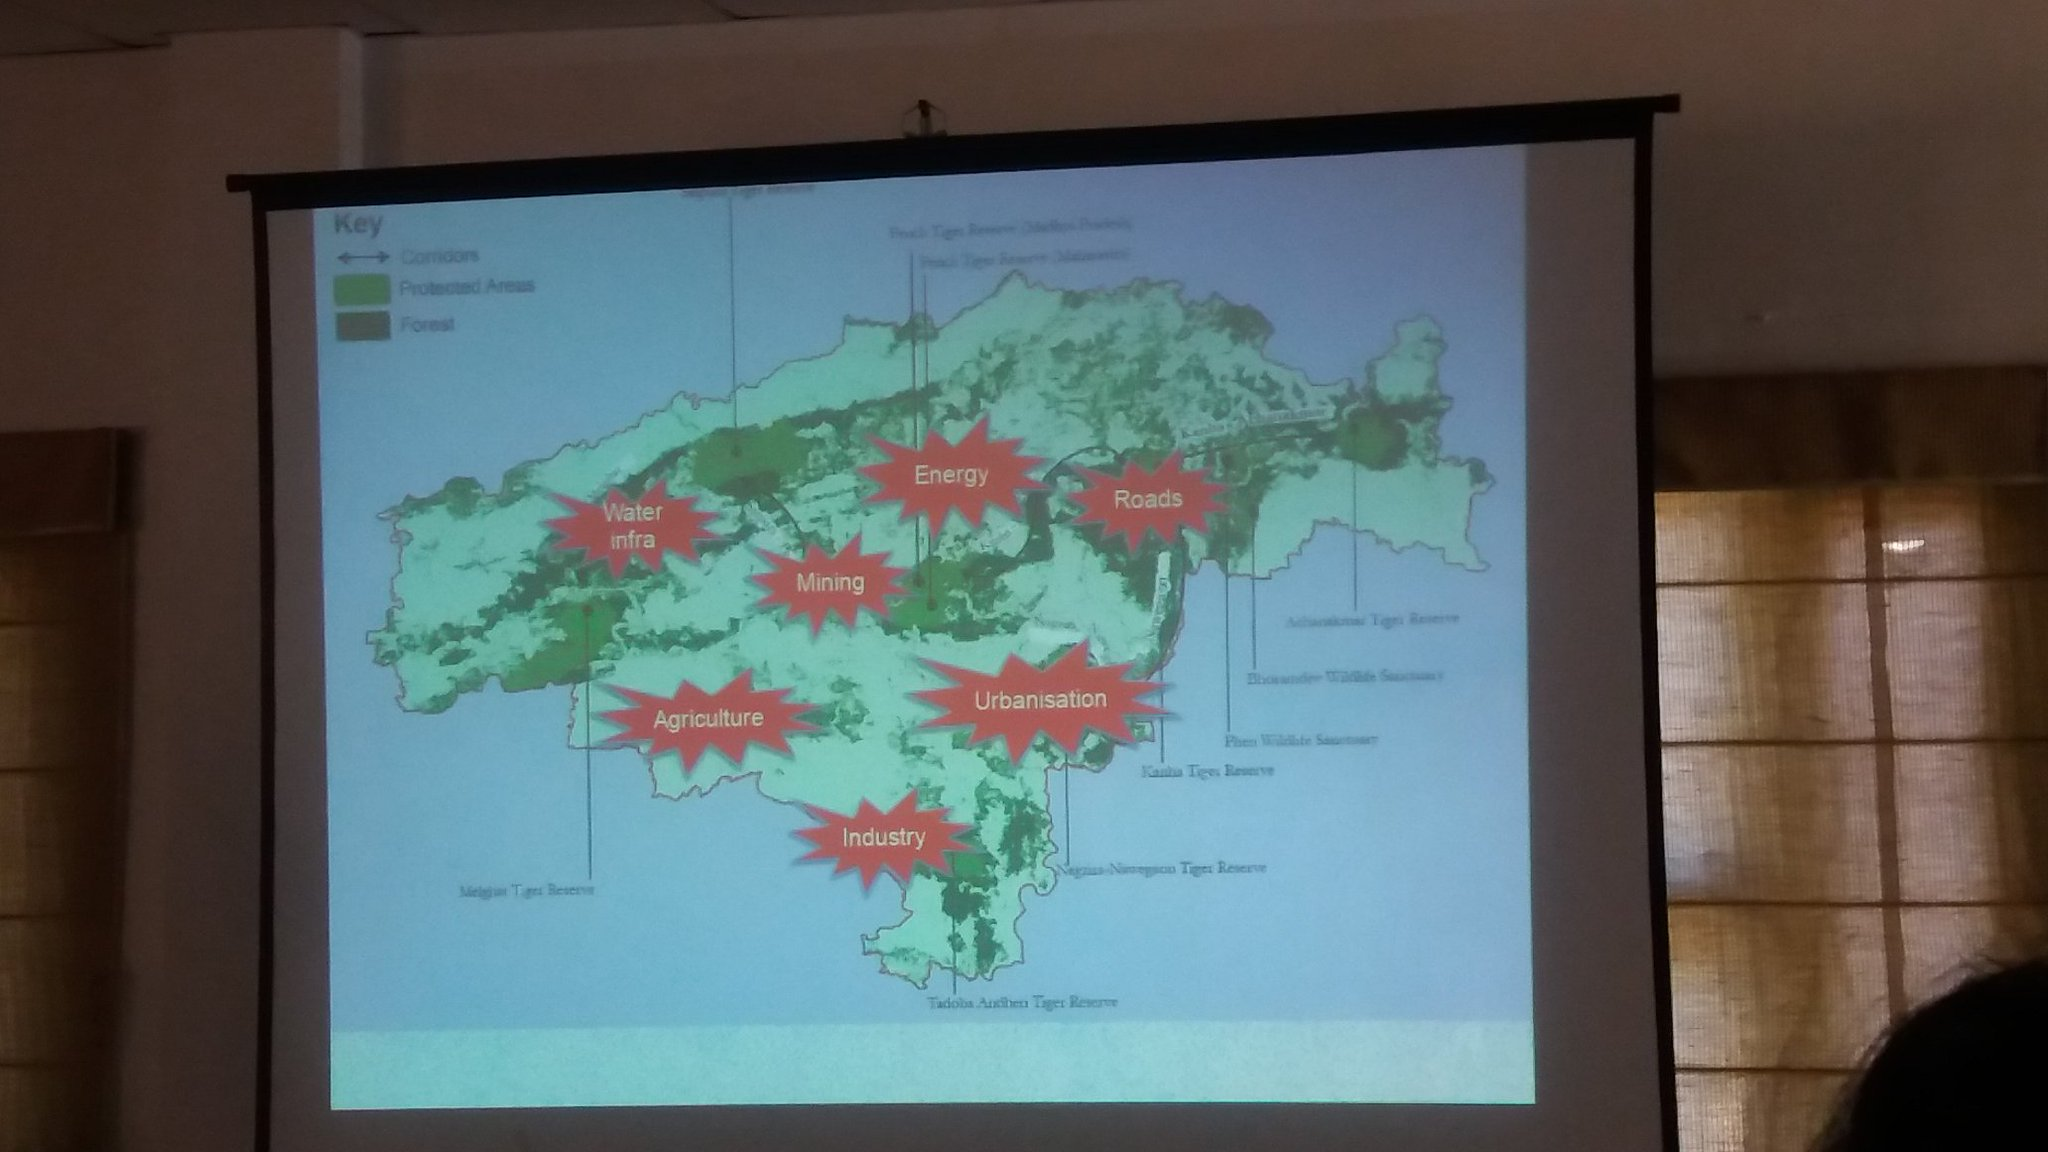 Opportunities for conservation in central india @dipankarghose @WWFINDIA  mindset change needed for effective conservation #CILS2016 https://t.co/ETgLiaH4ra